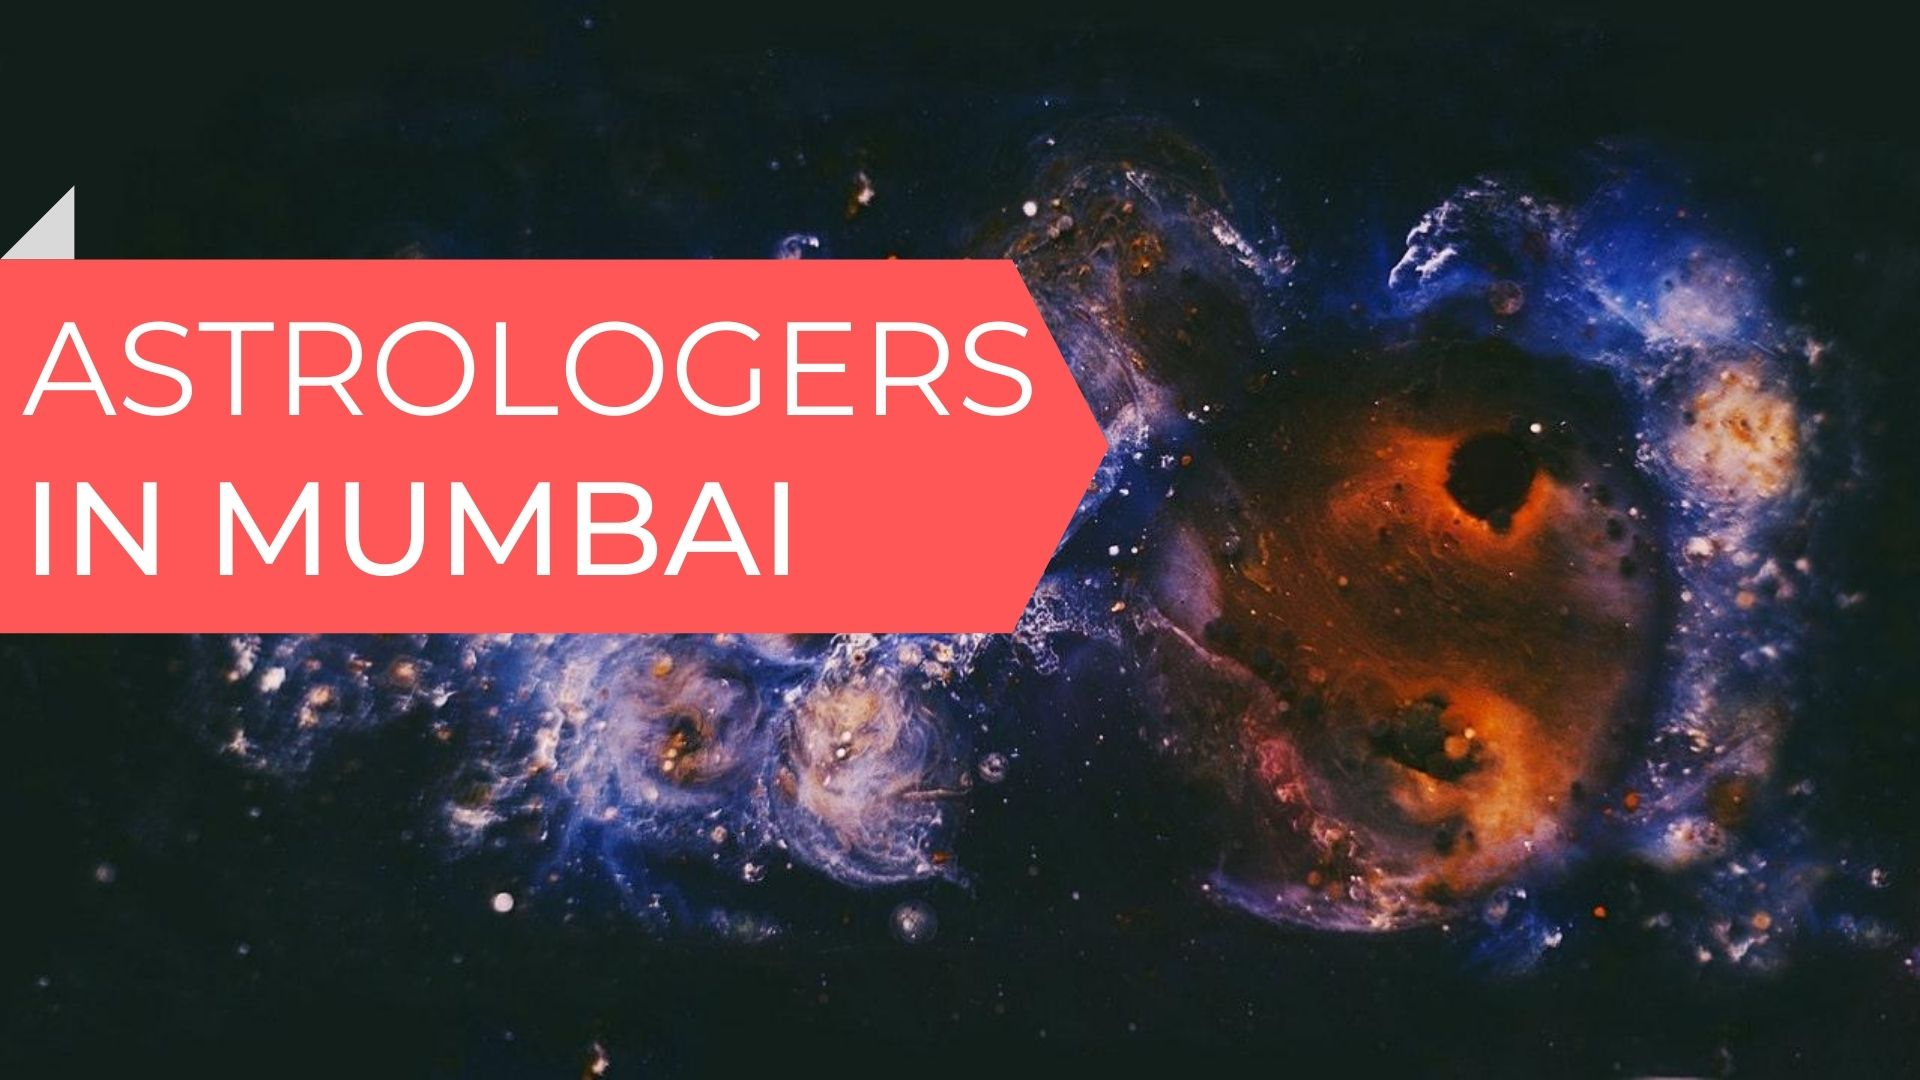 Astrologers in Mumbai